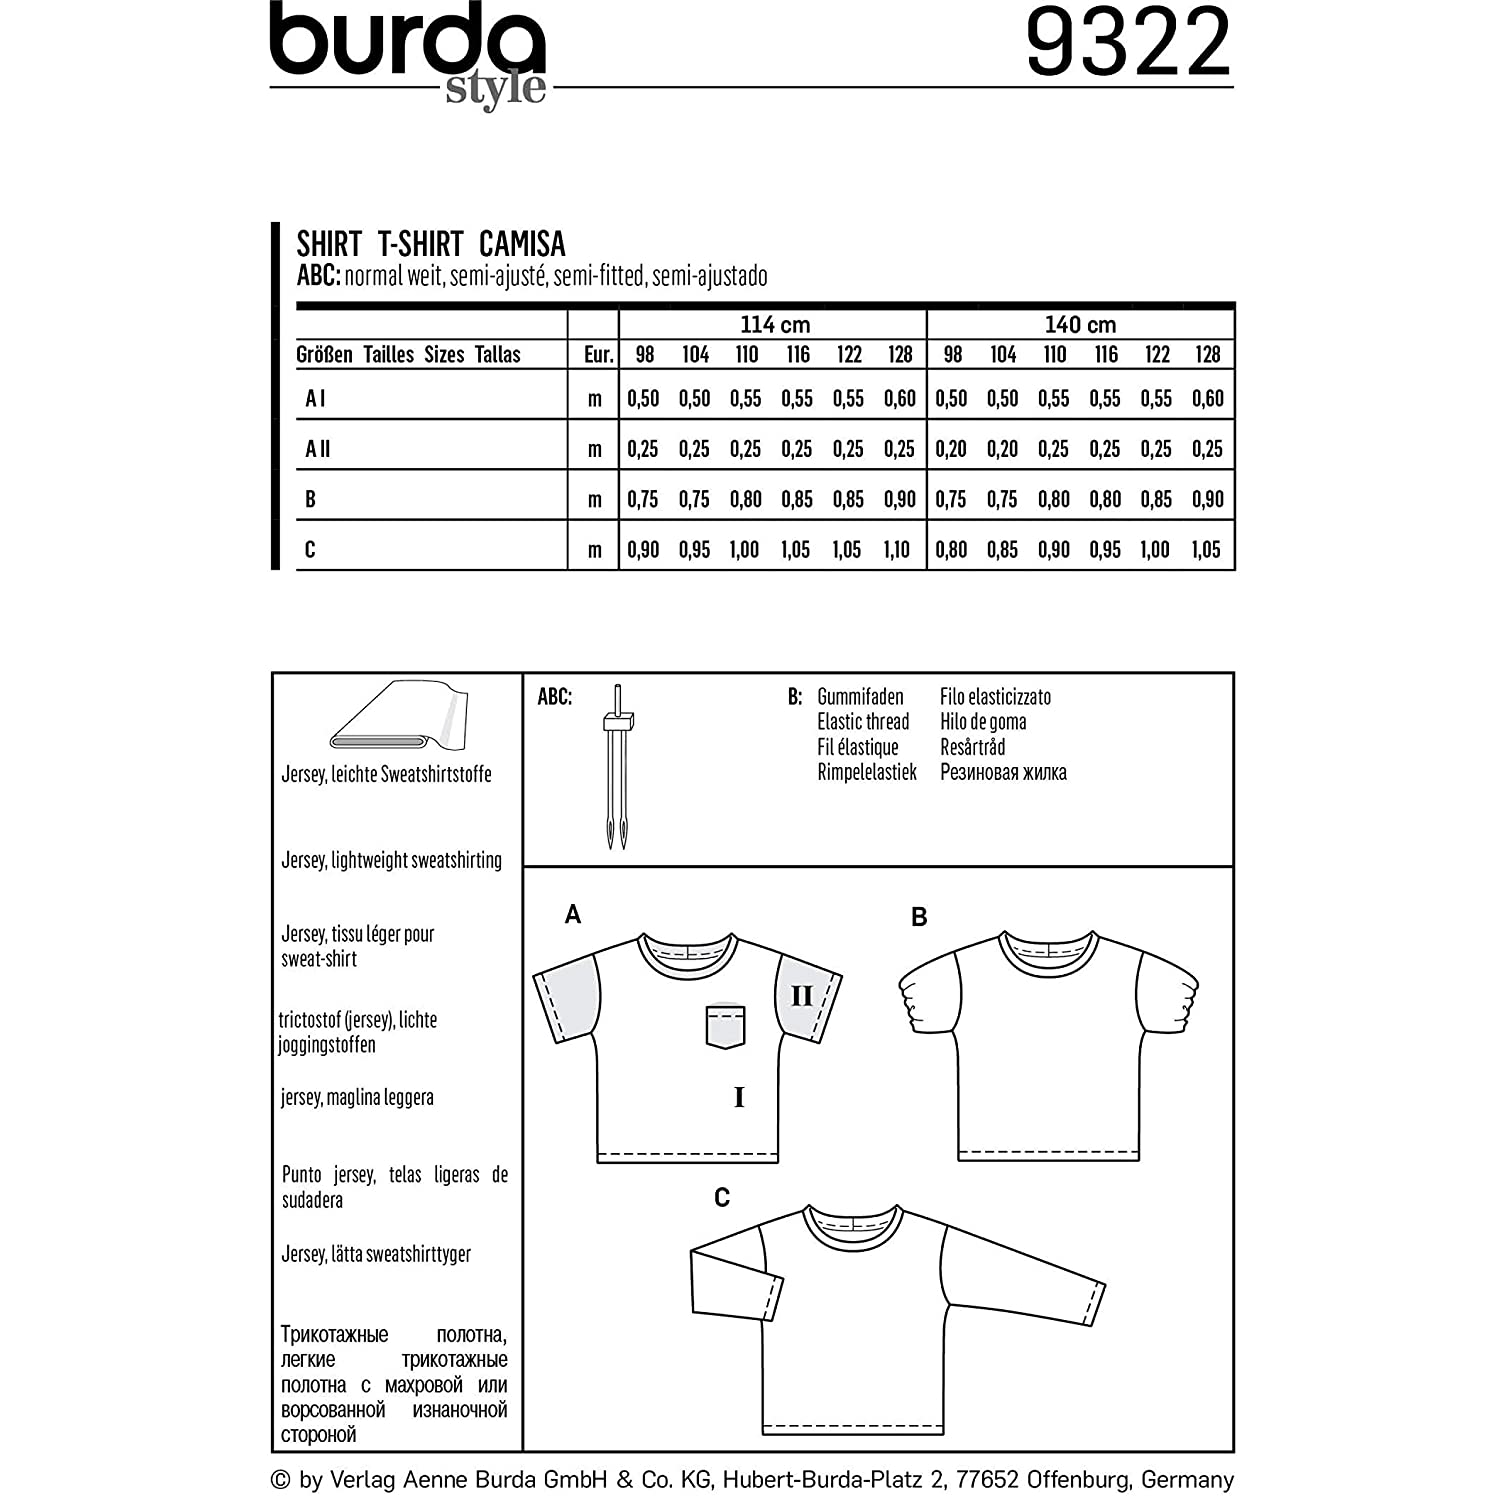 Amazon.com: Burda Style Sewing Pattern 9322 - Childrens Top, A(3-4-5-6-7-8): Arts, Crafts & Sewing